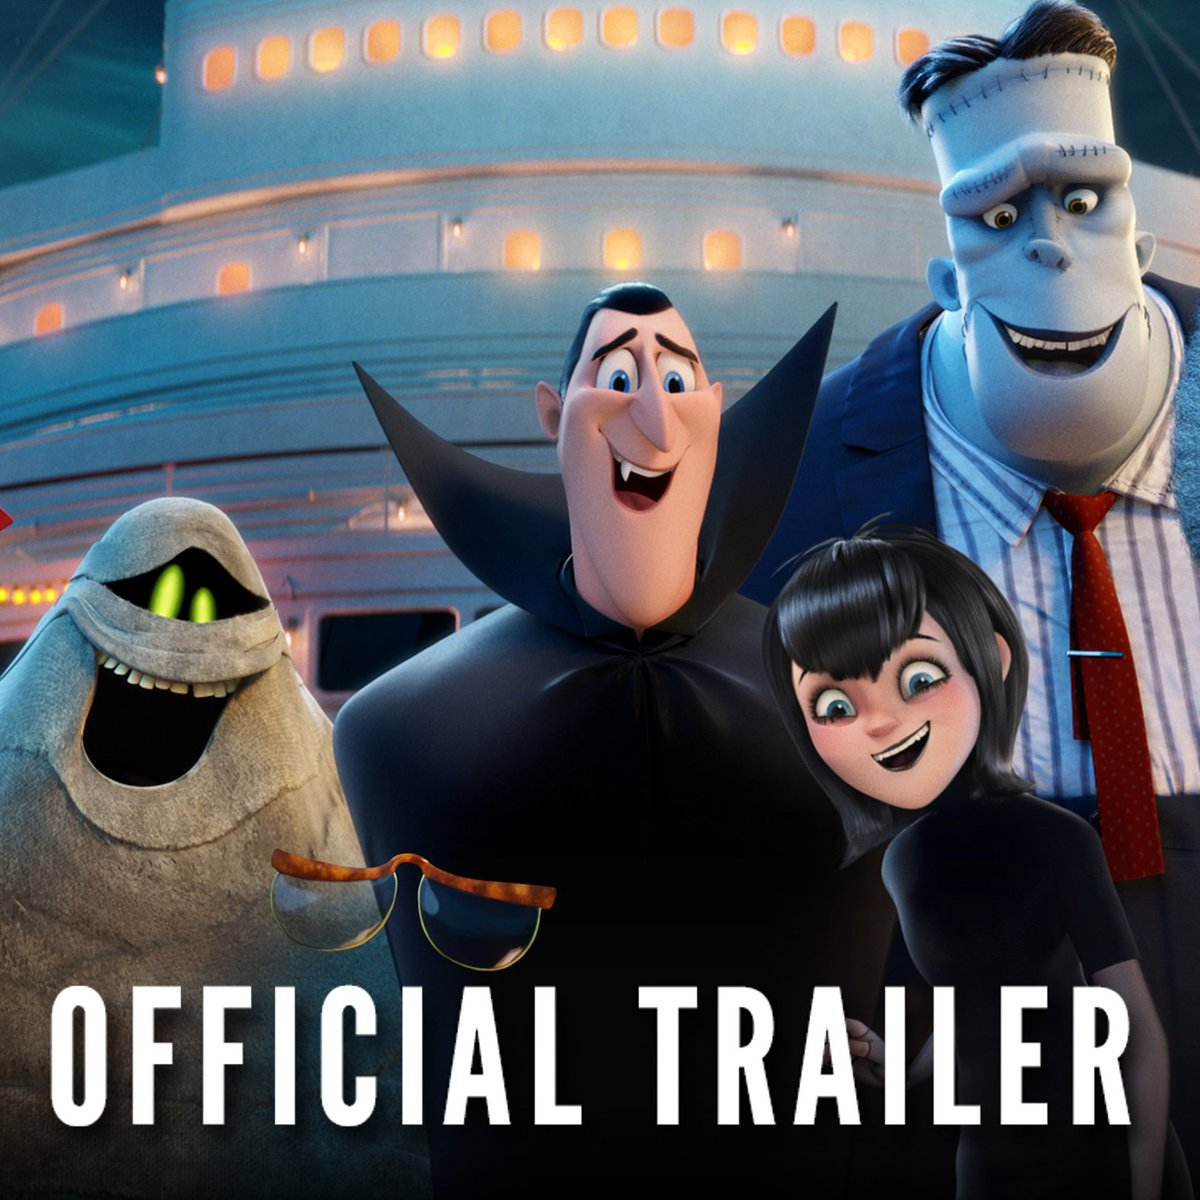 Kick back with the Drac pack in the all-new #HotelT3 teaser trailer now and don't miss them in theaters next summer! 🧛🚢